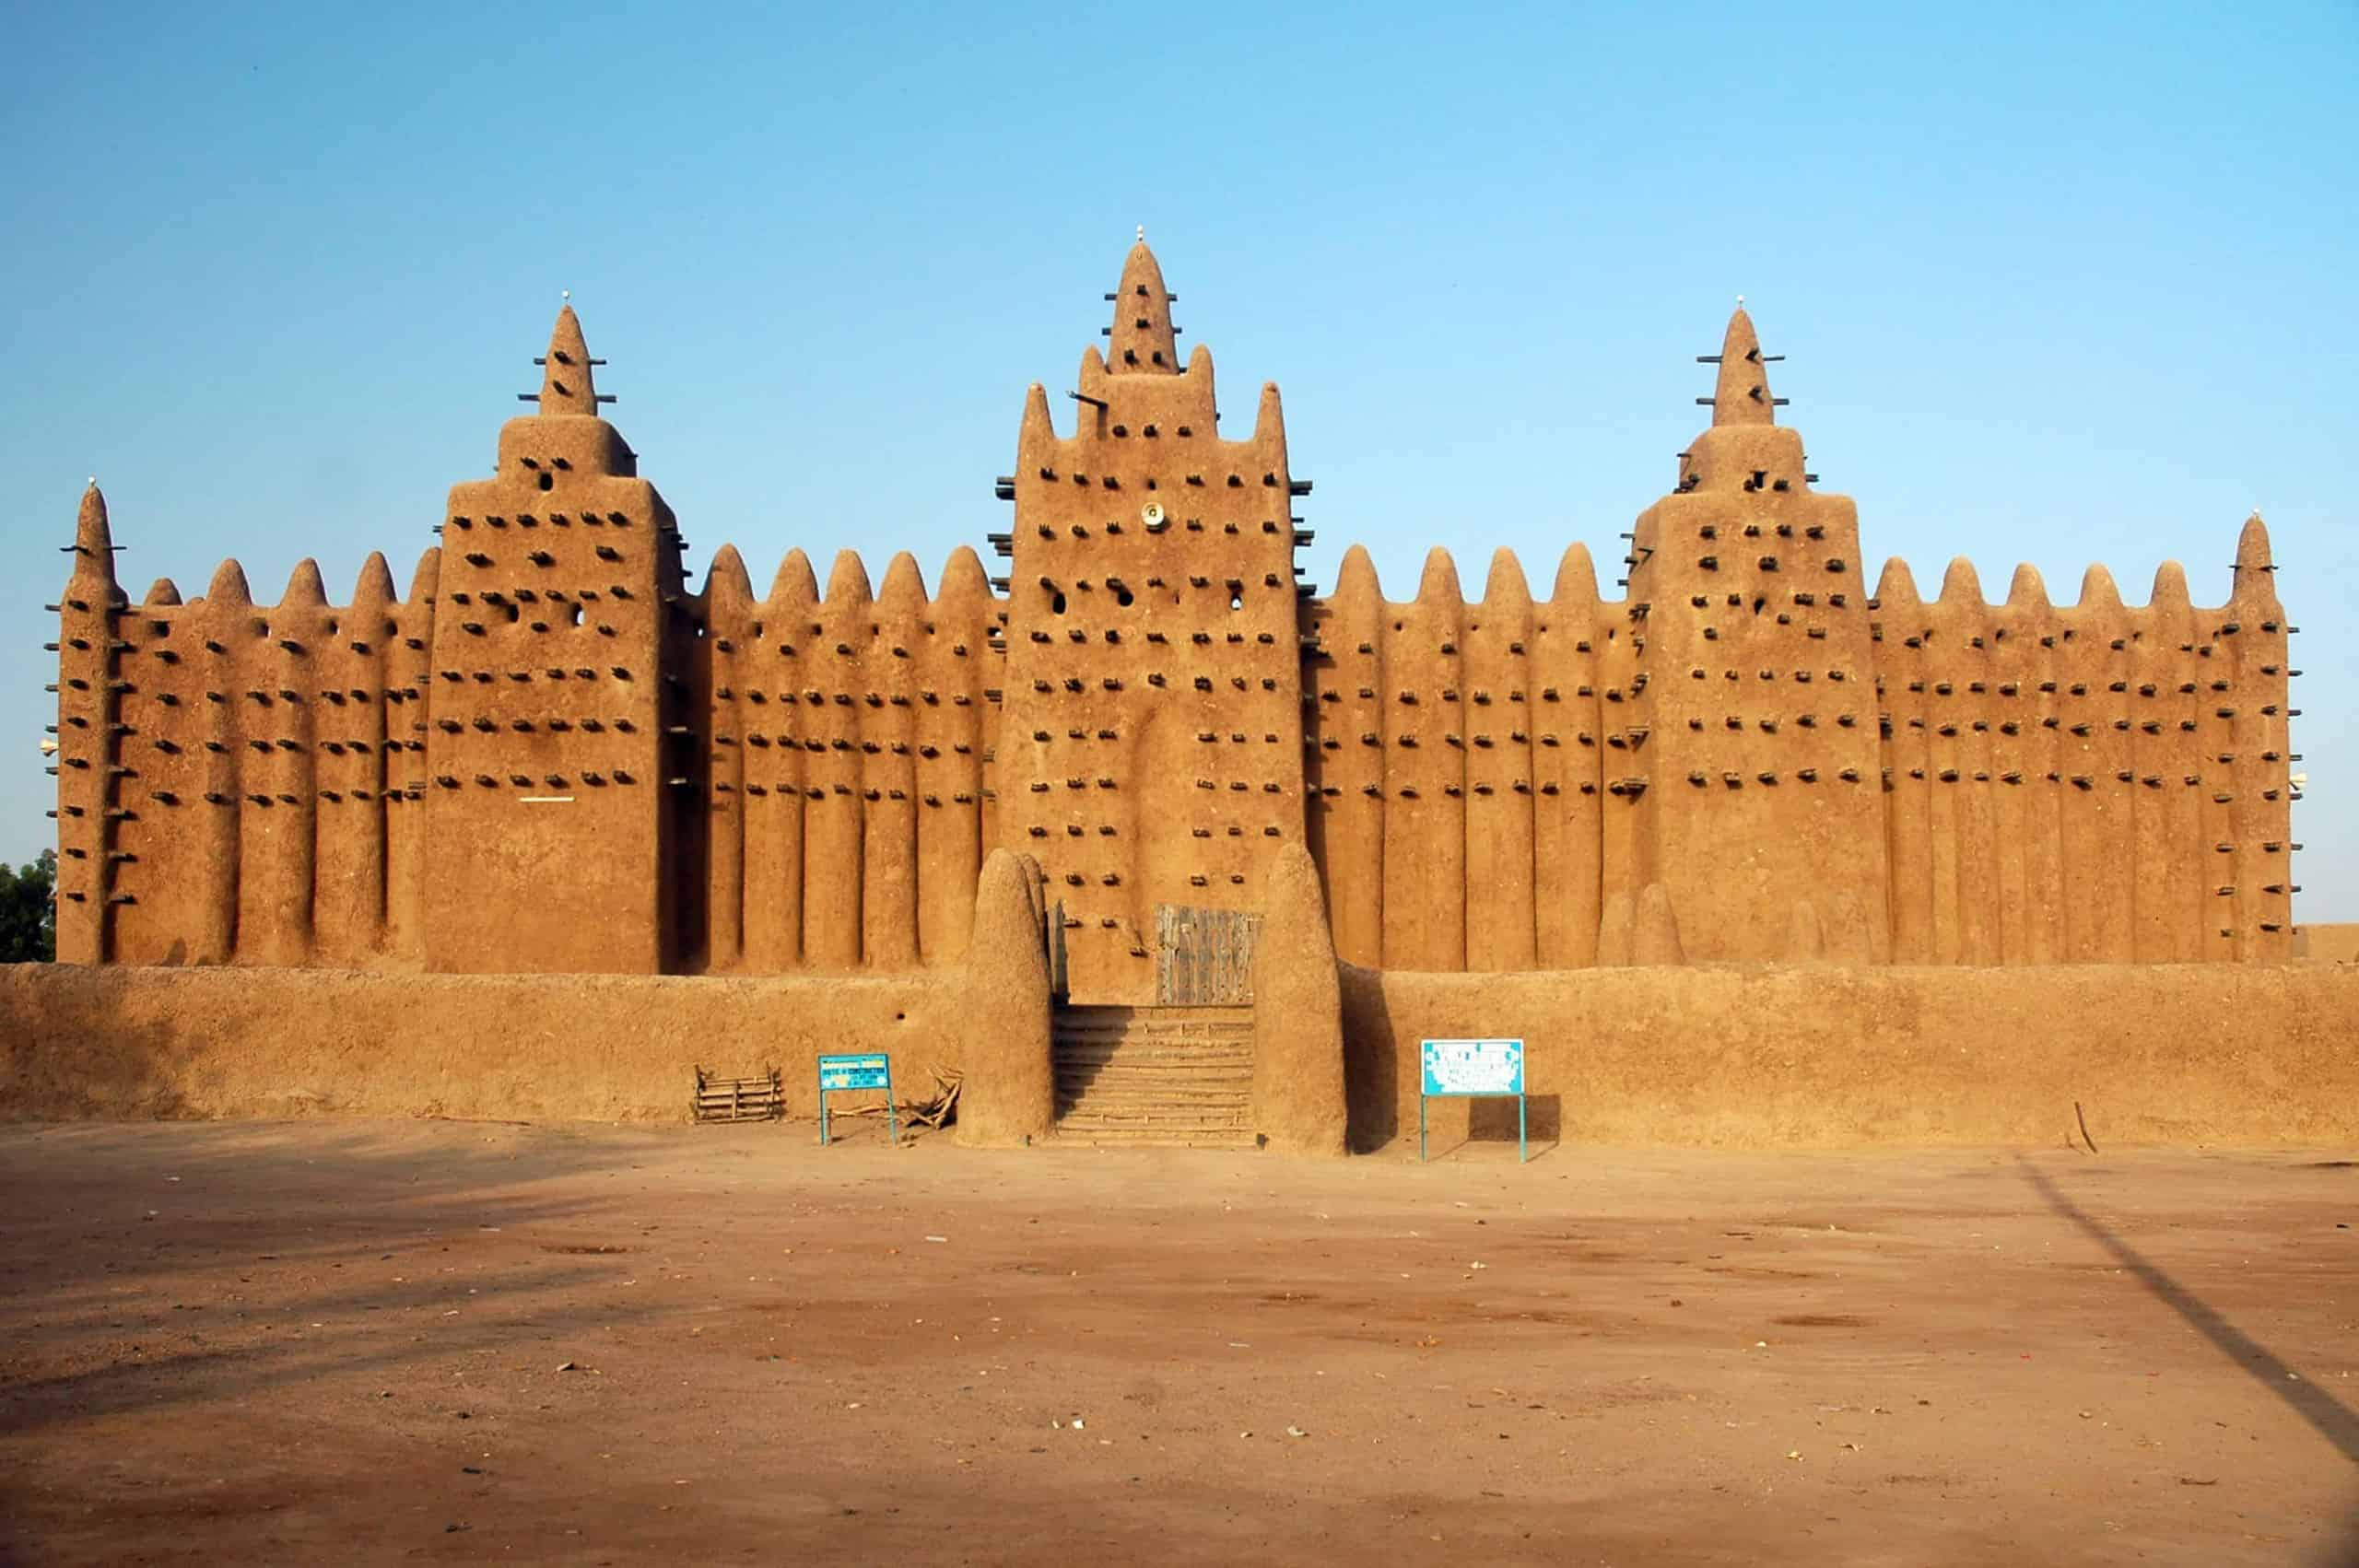 Ten interesting facts about Mali